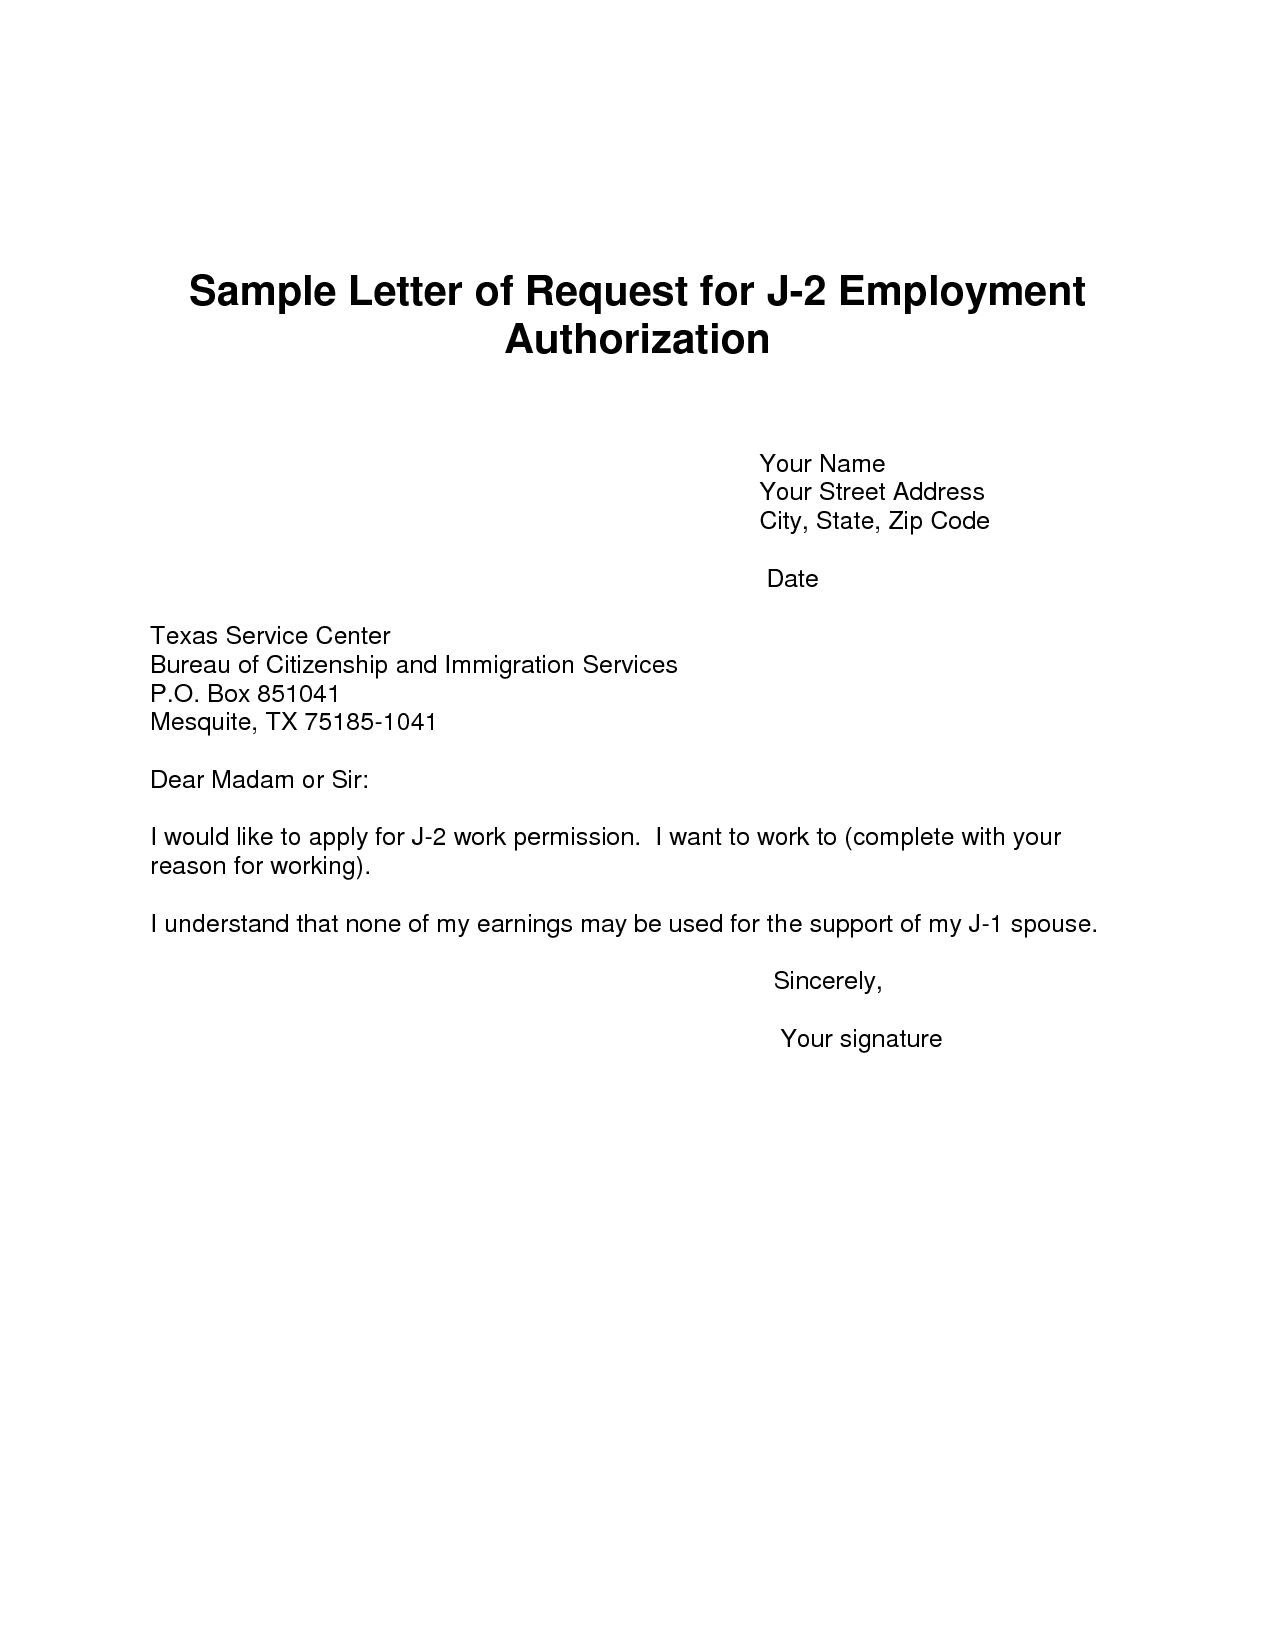 job abandonment letter letter for job abandonment hr letter law letter for job abandonment hr letter law topics featured resumes job